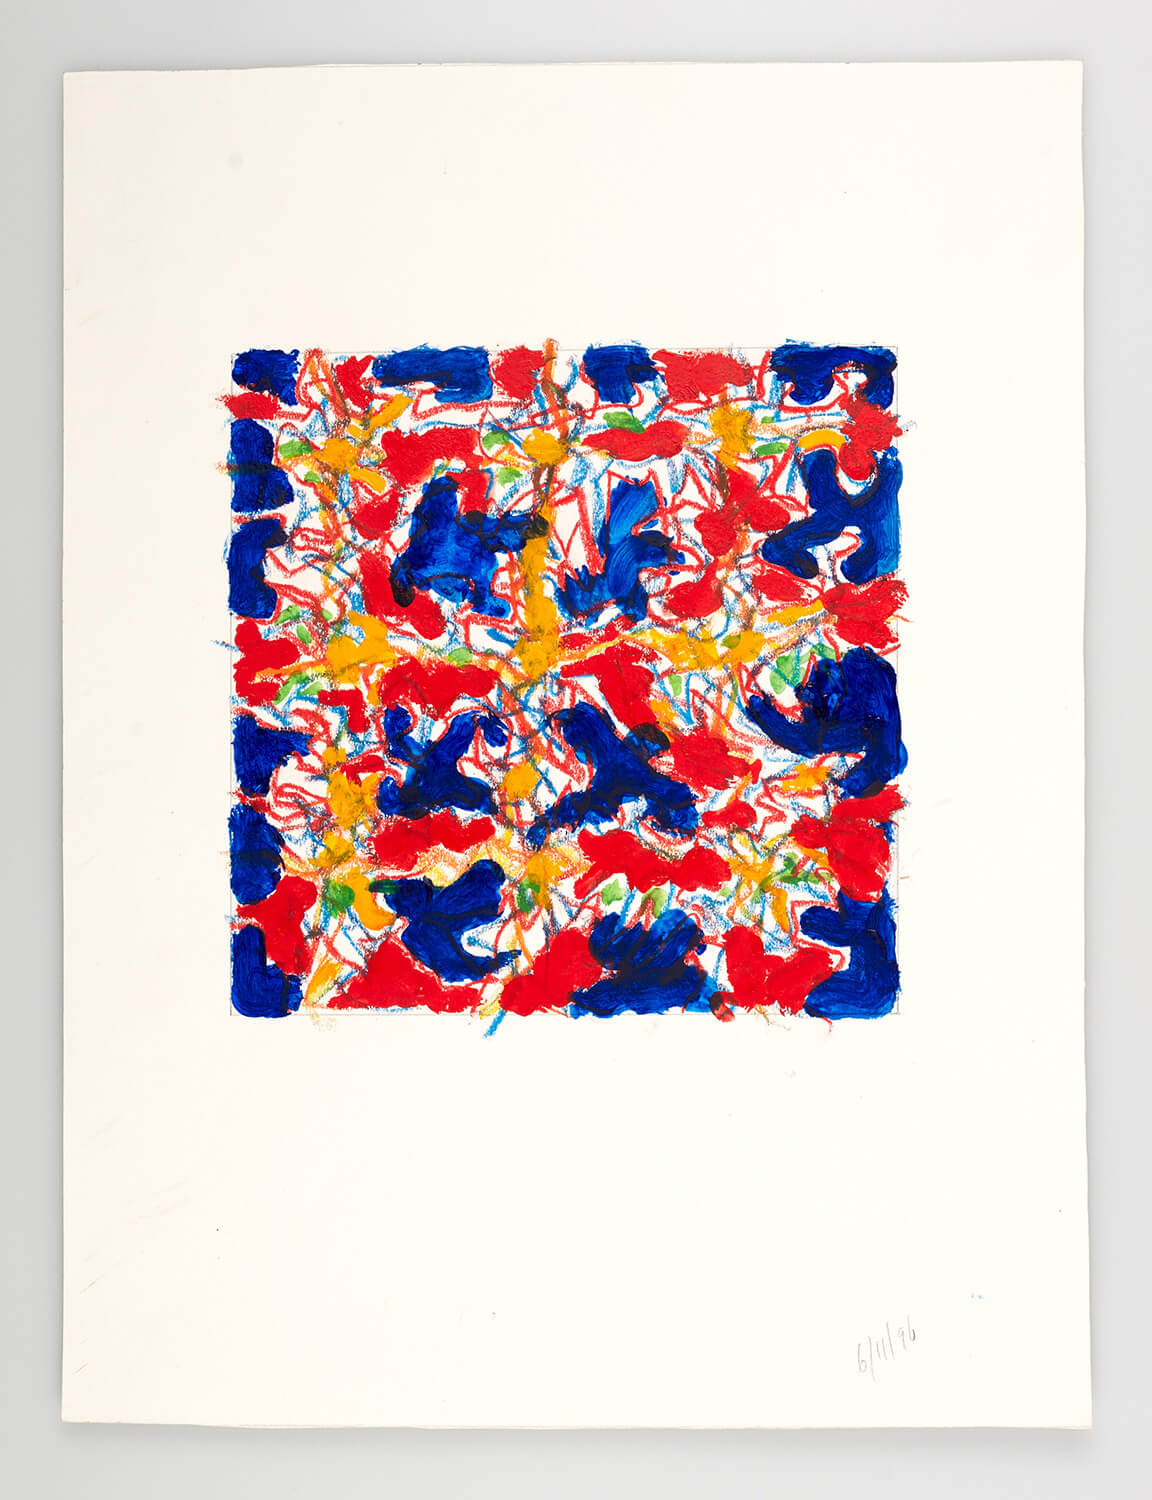 JB135 - Abstract Red and Blue - 1996 - 25 x 25 cm - Acrylic and conte on paper